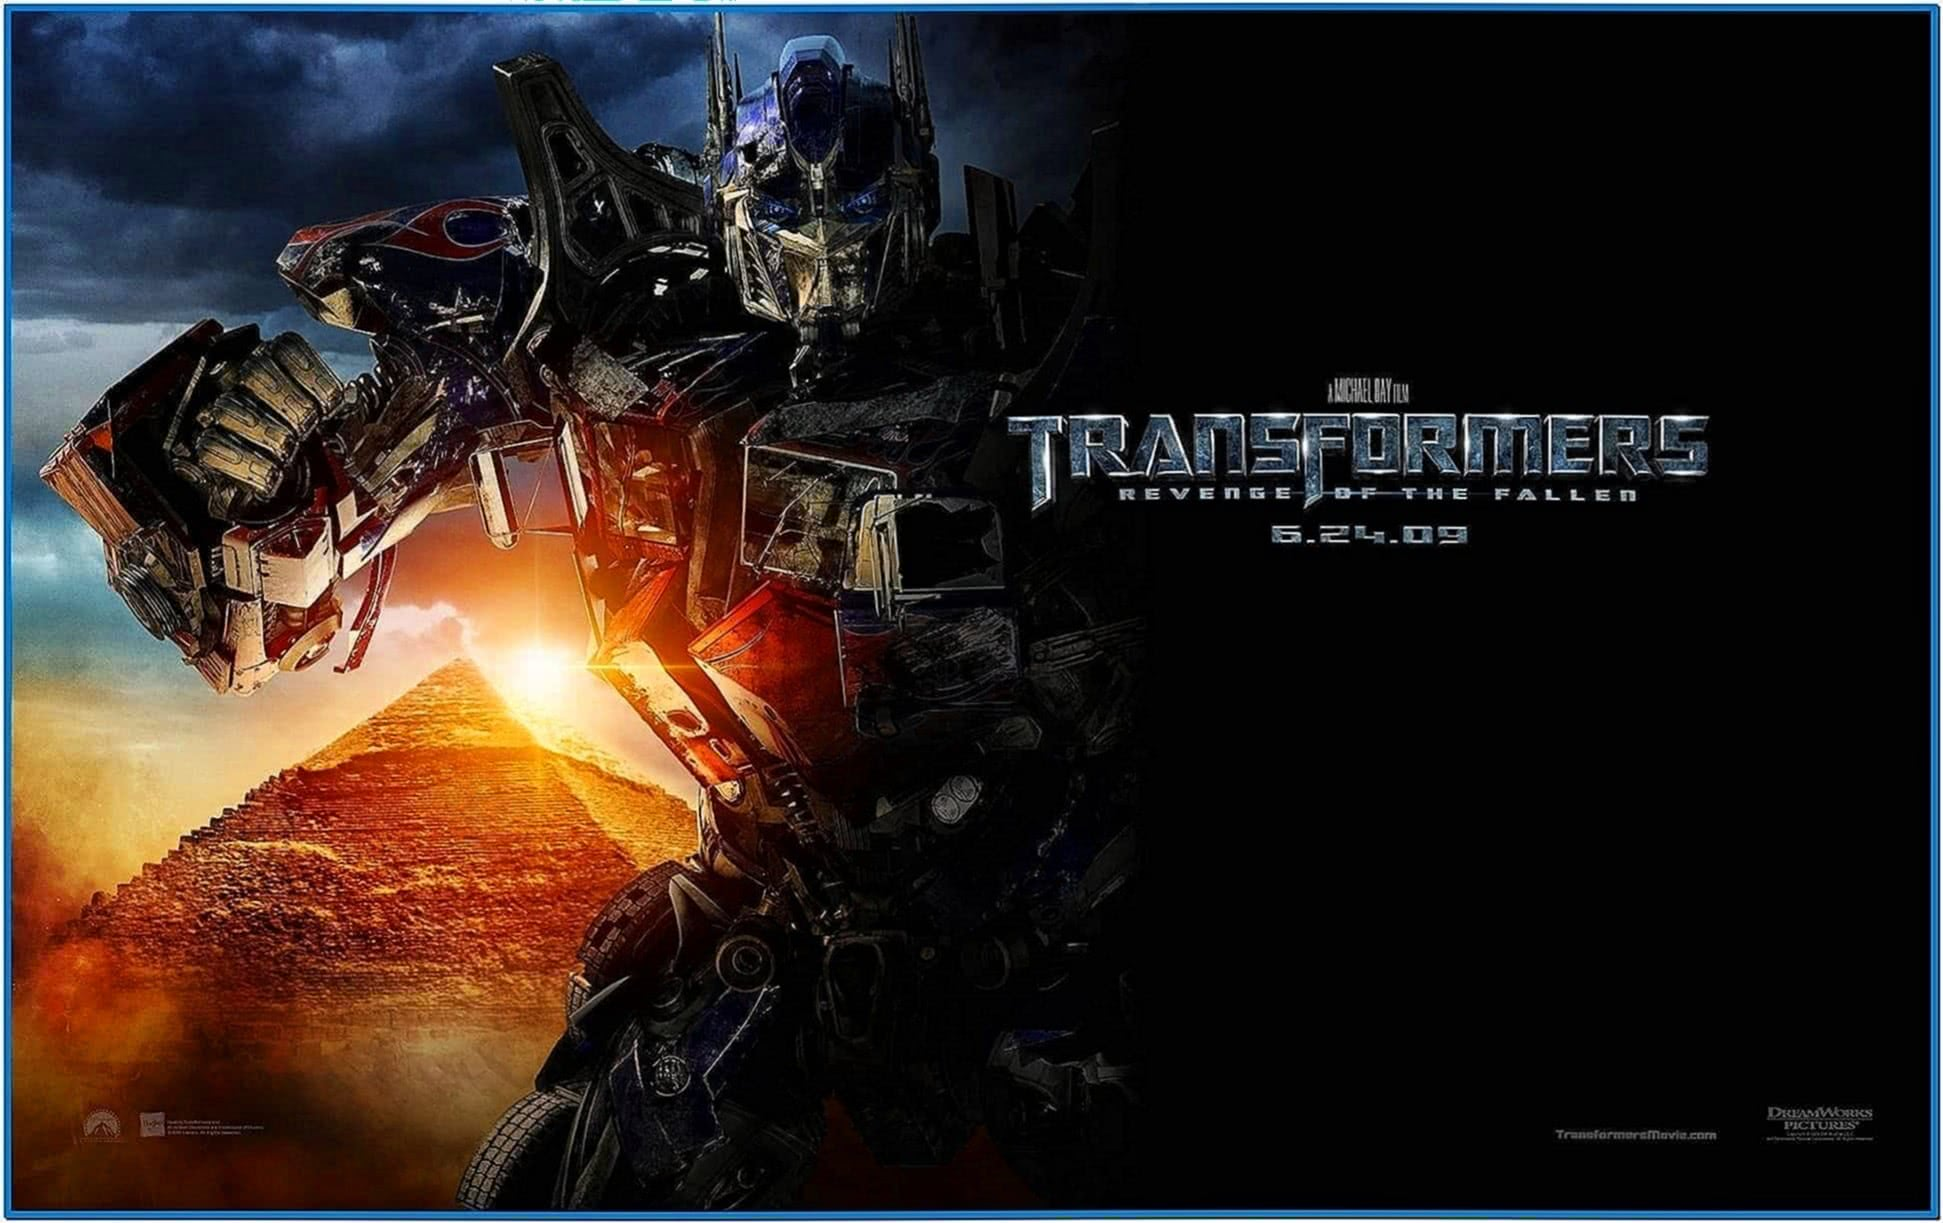 Transformers 2 Revenge of The Fallen Screensaver